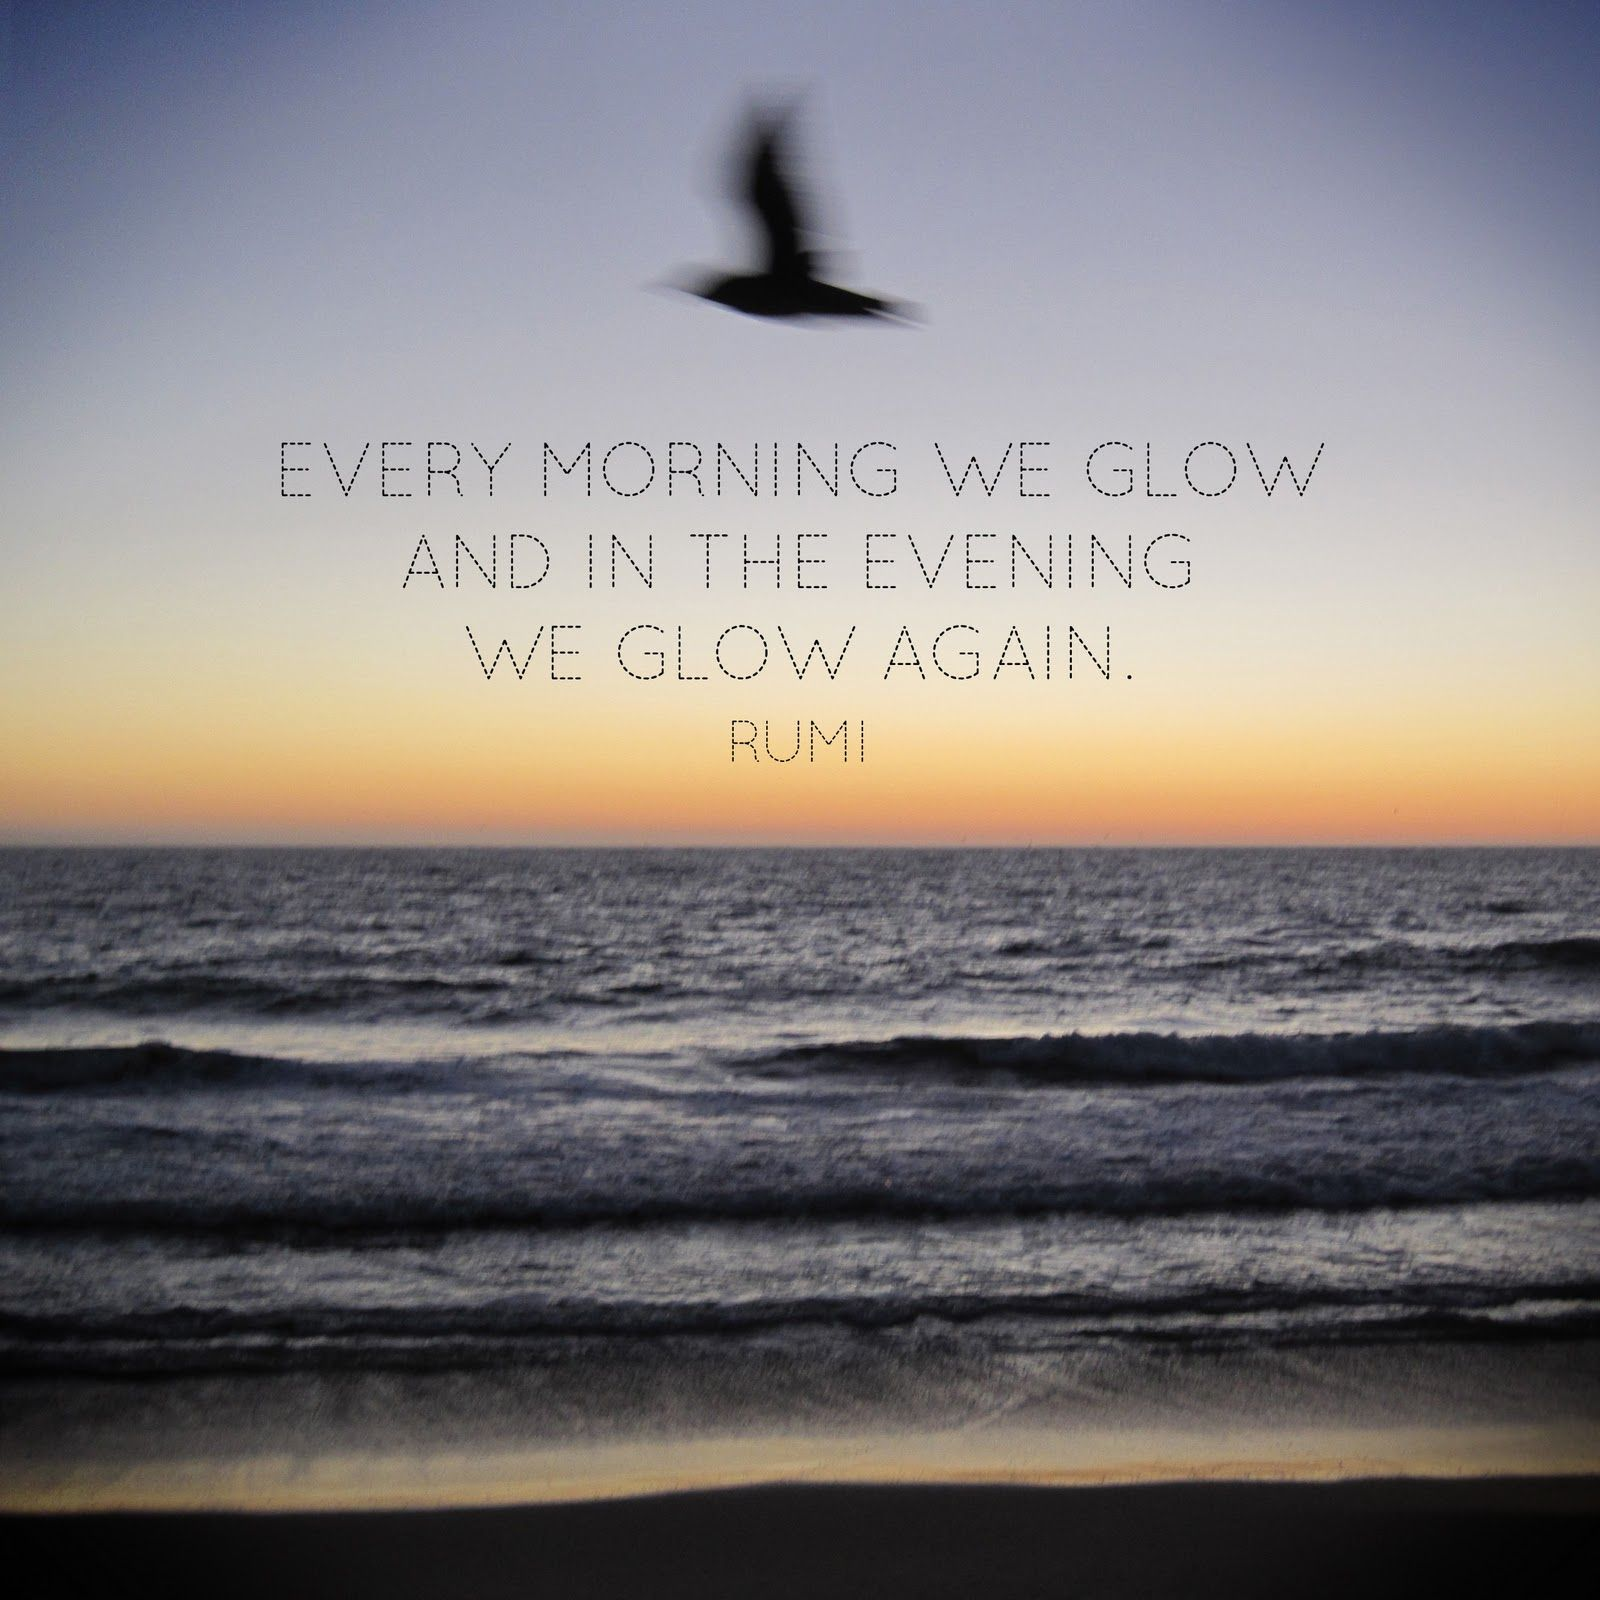 Quote from Rumi s